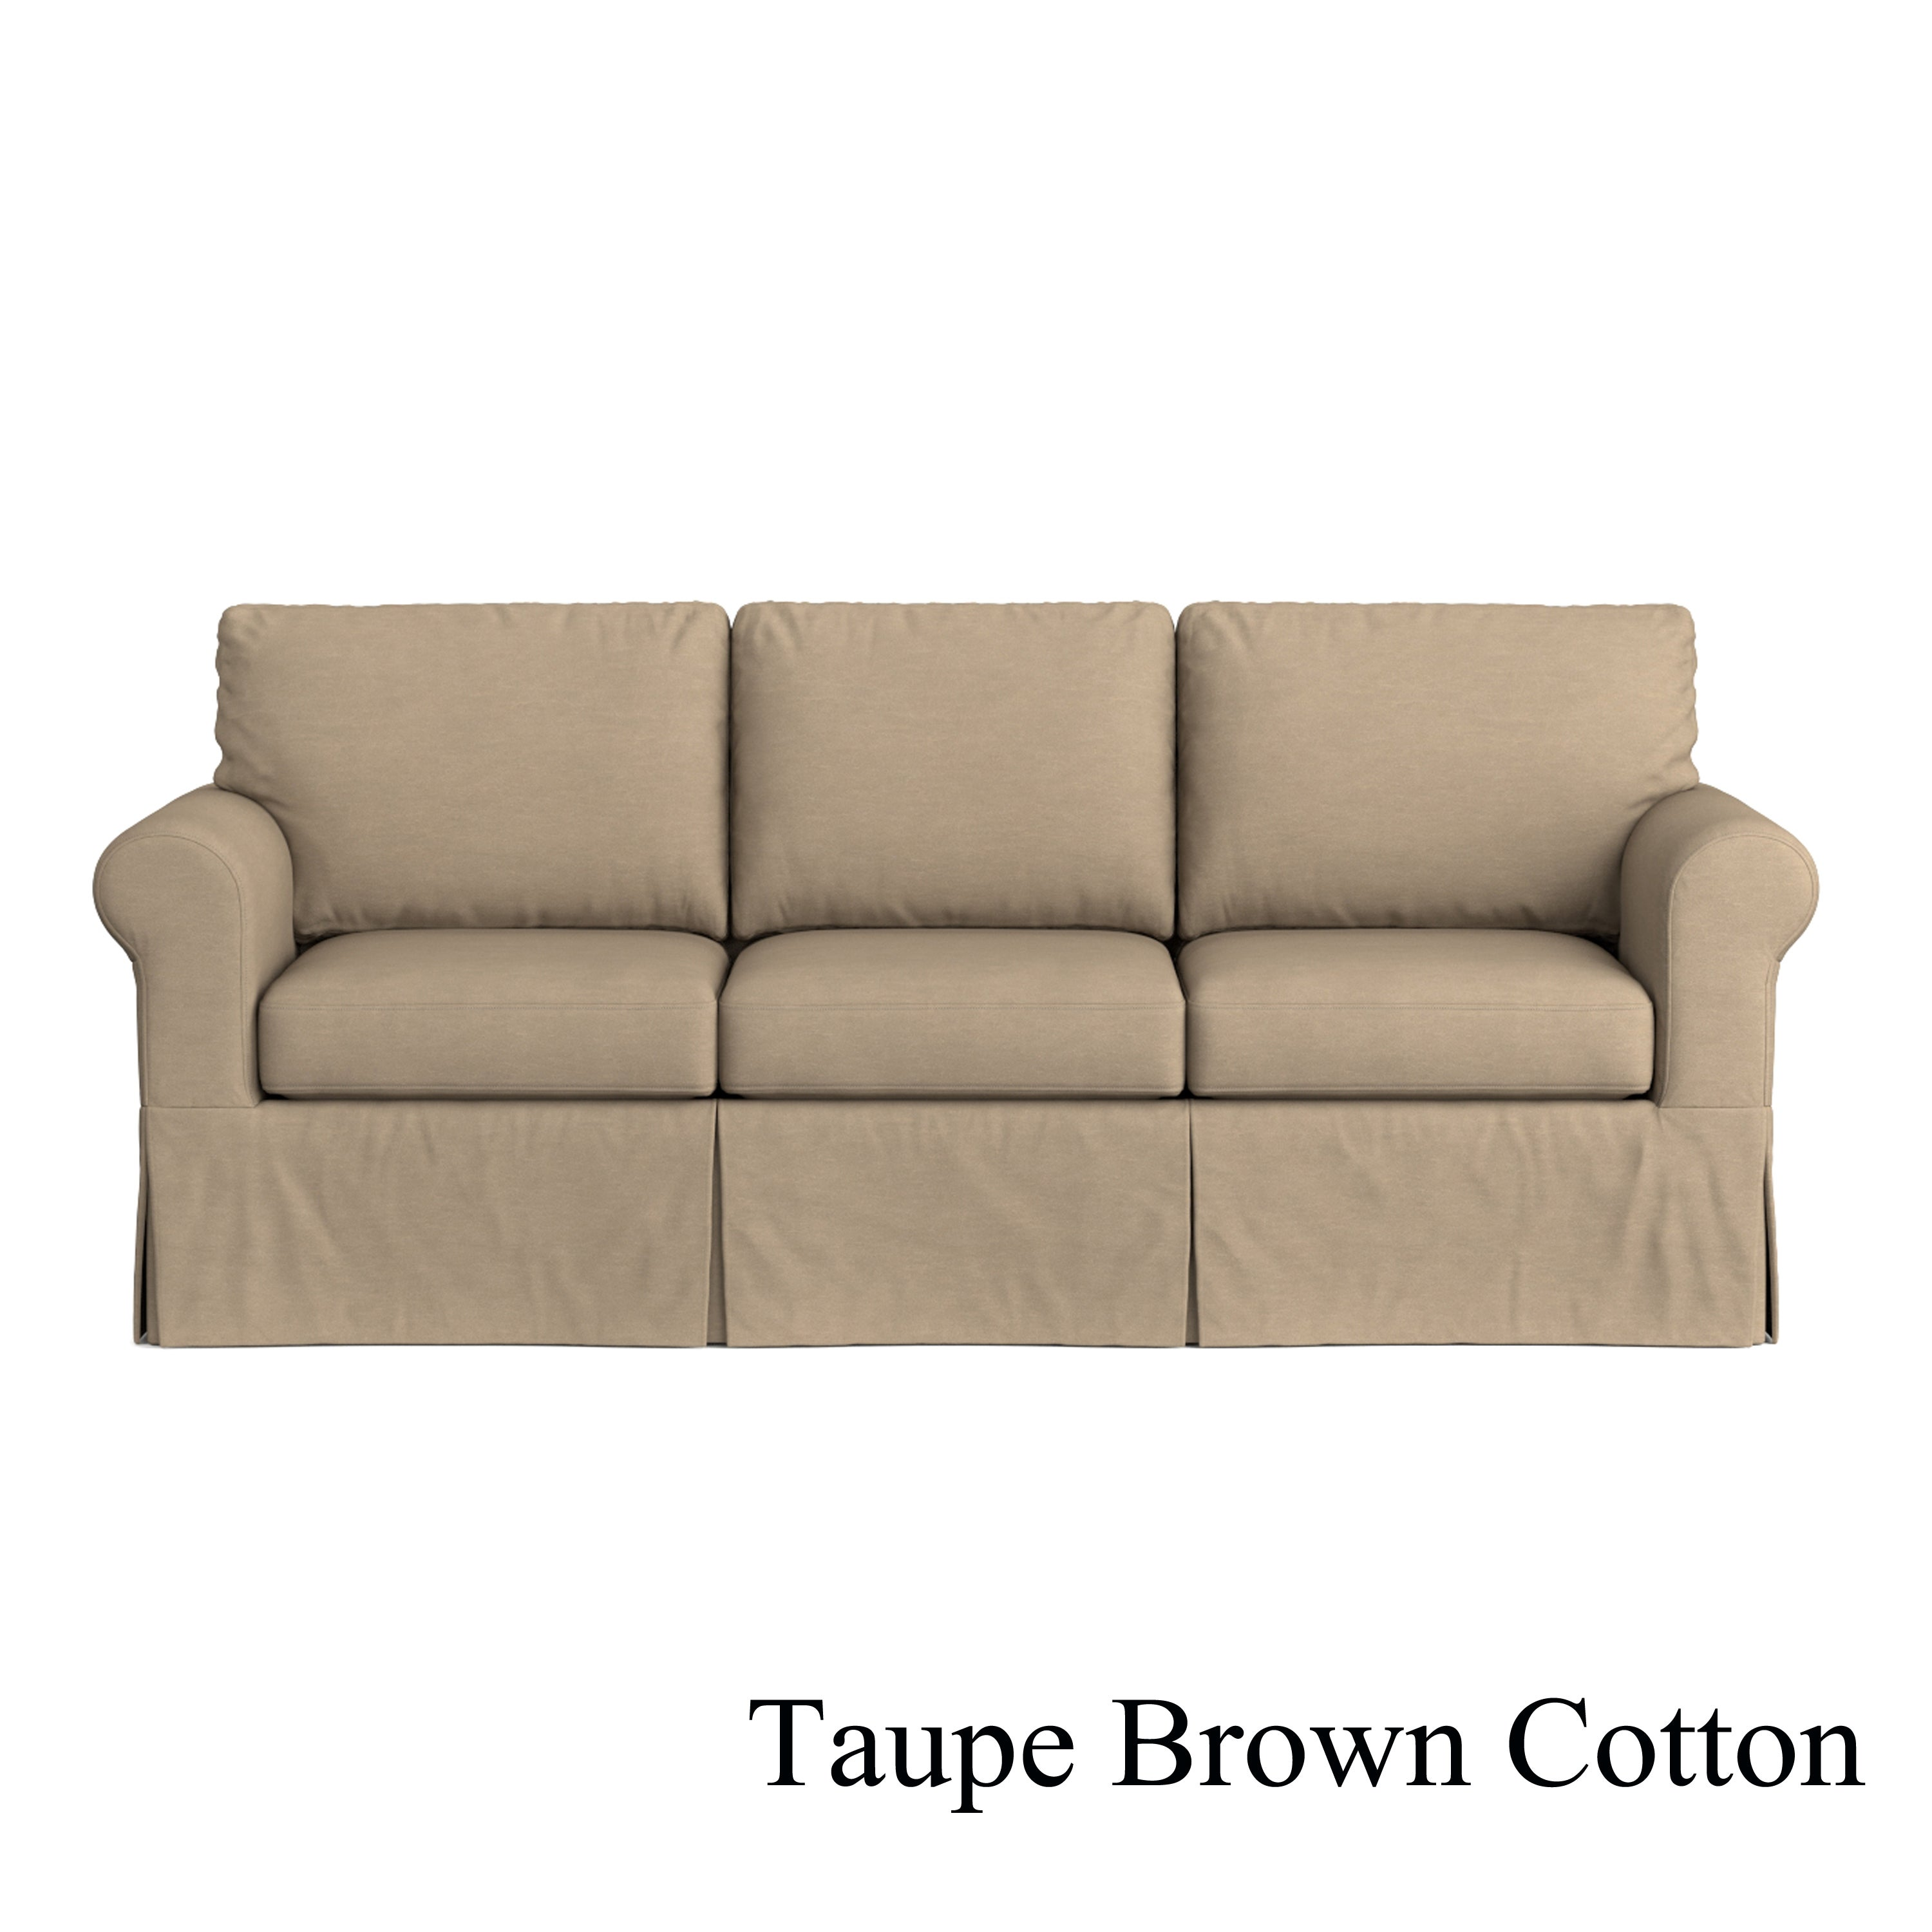 sofa type item rs coventry lexington hills brands cream sofas slipcover detail stowe home items